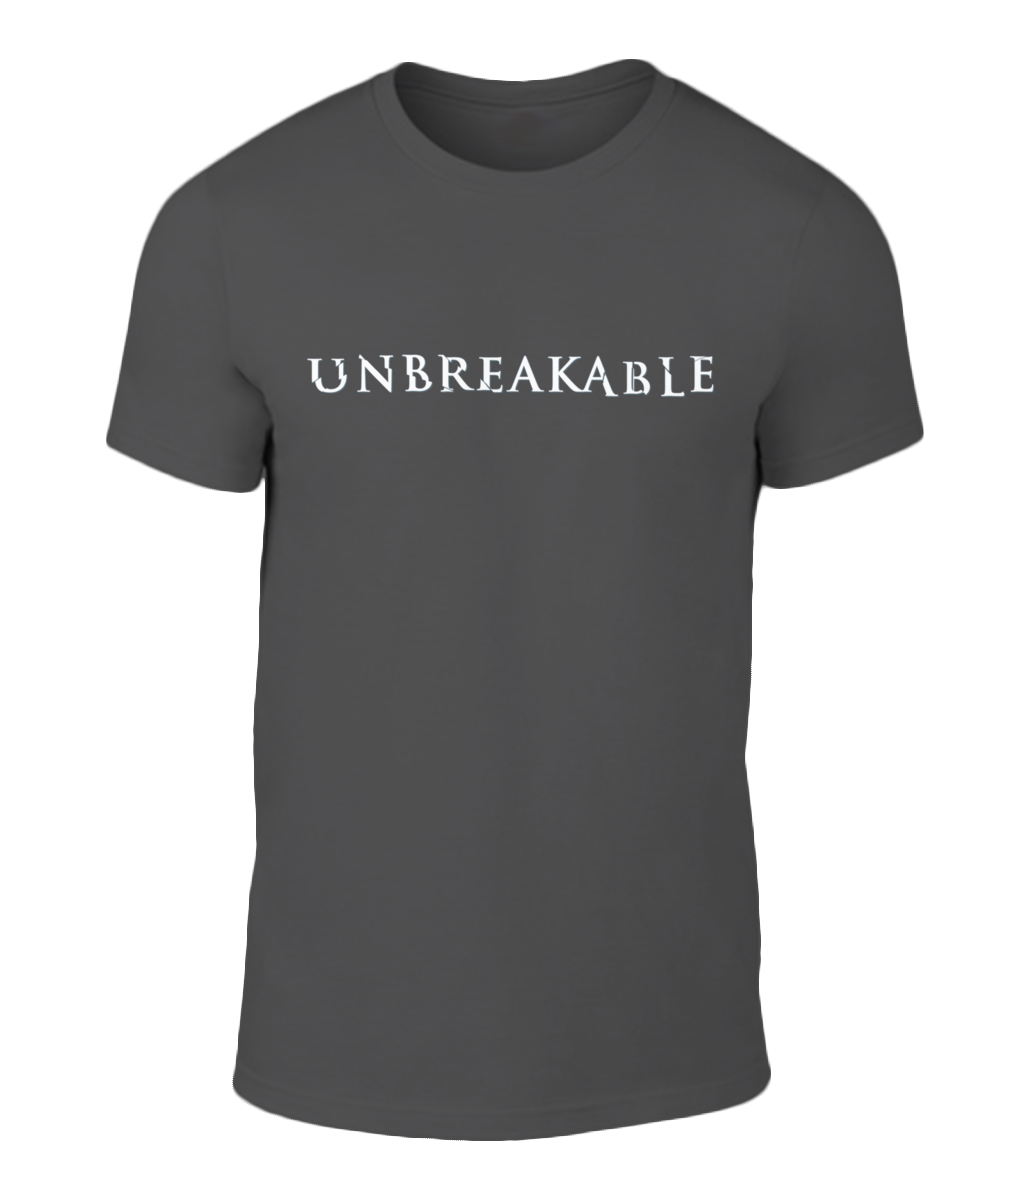 Mens Unbreakable T-shirt